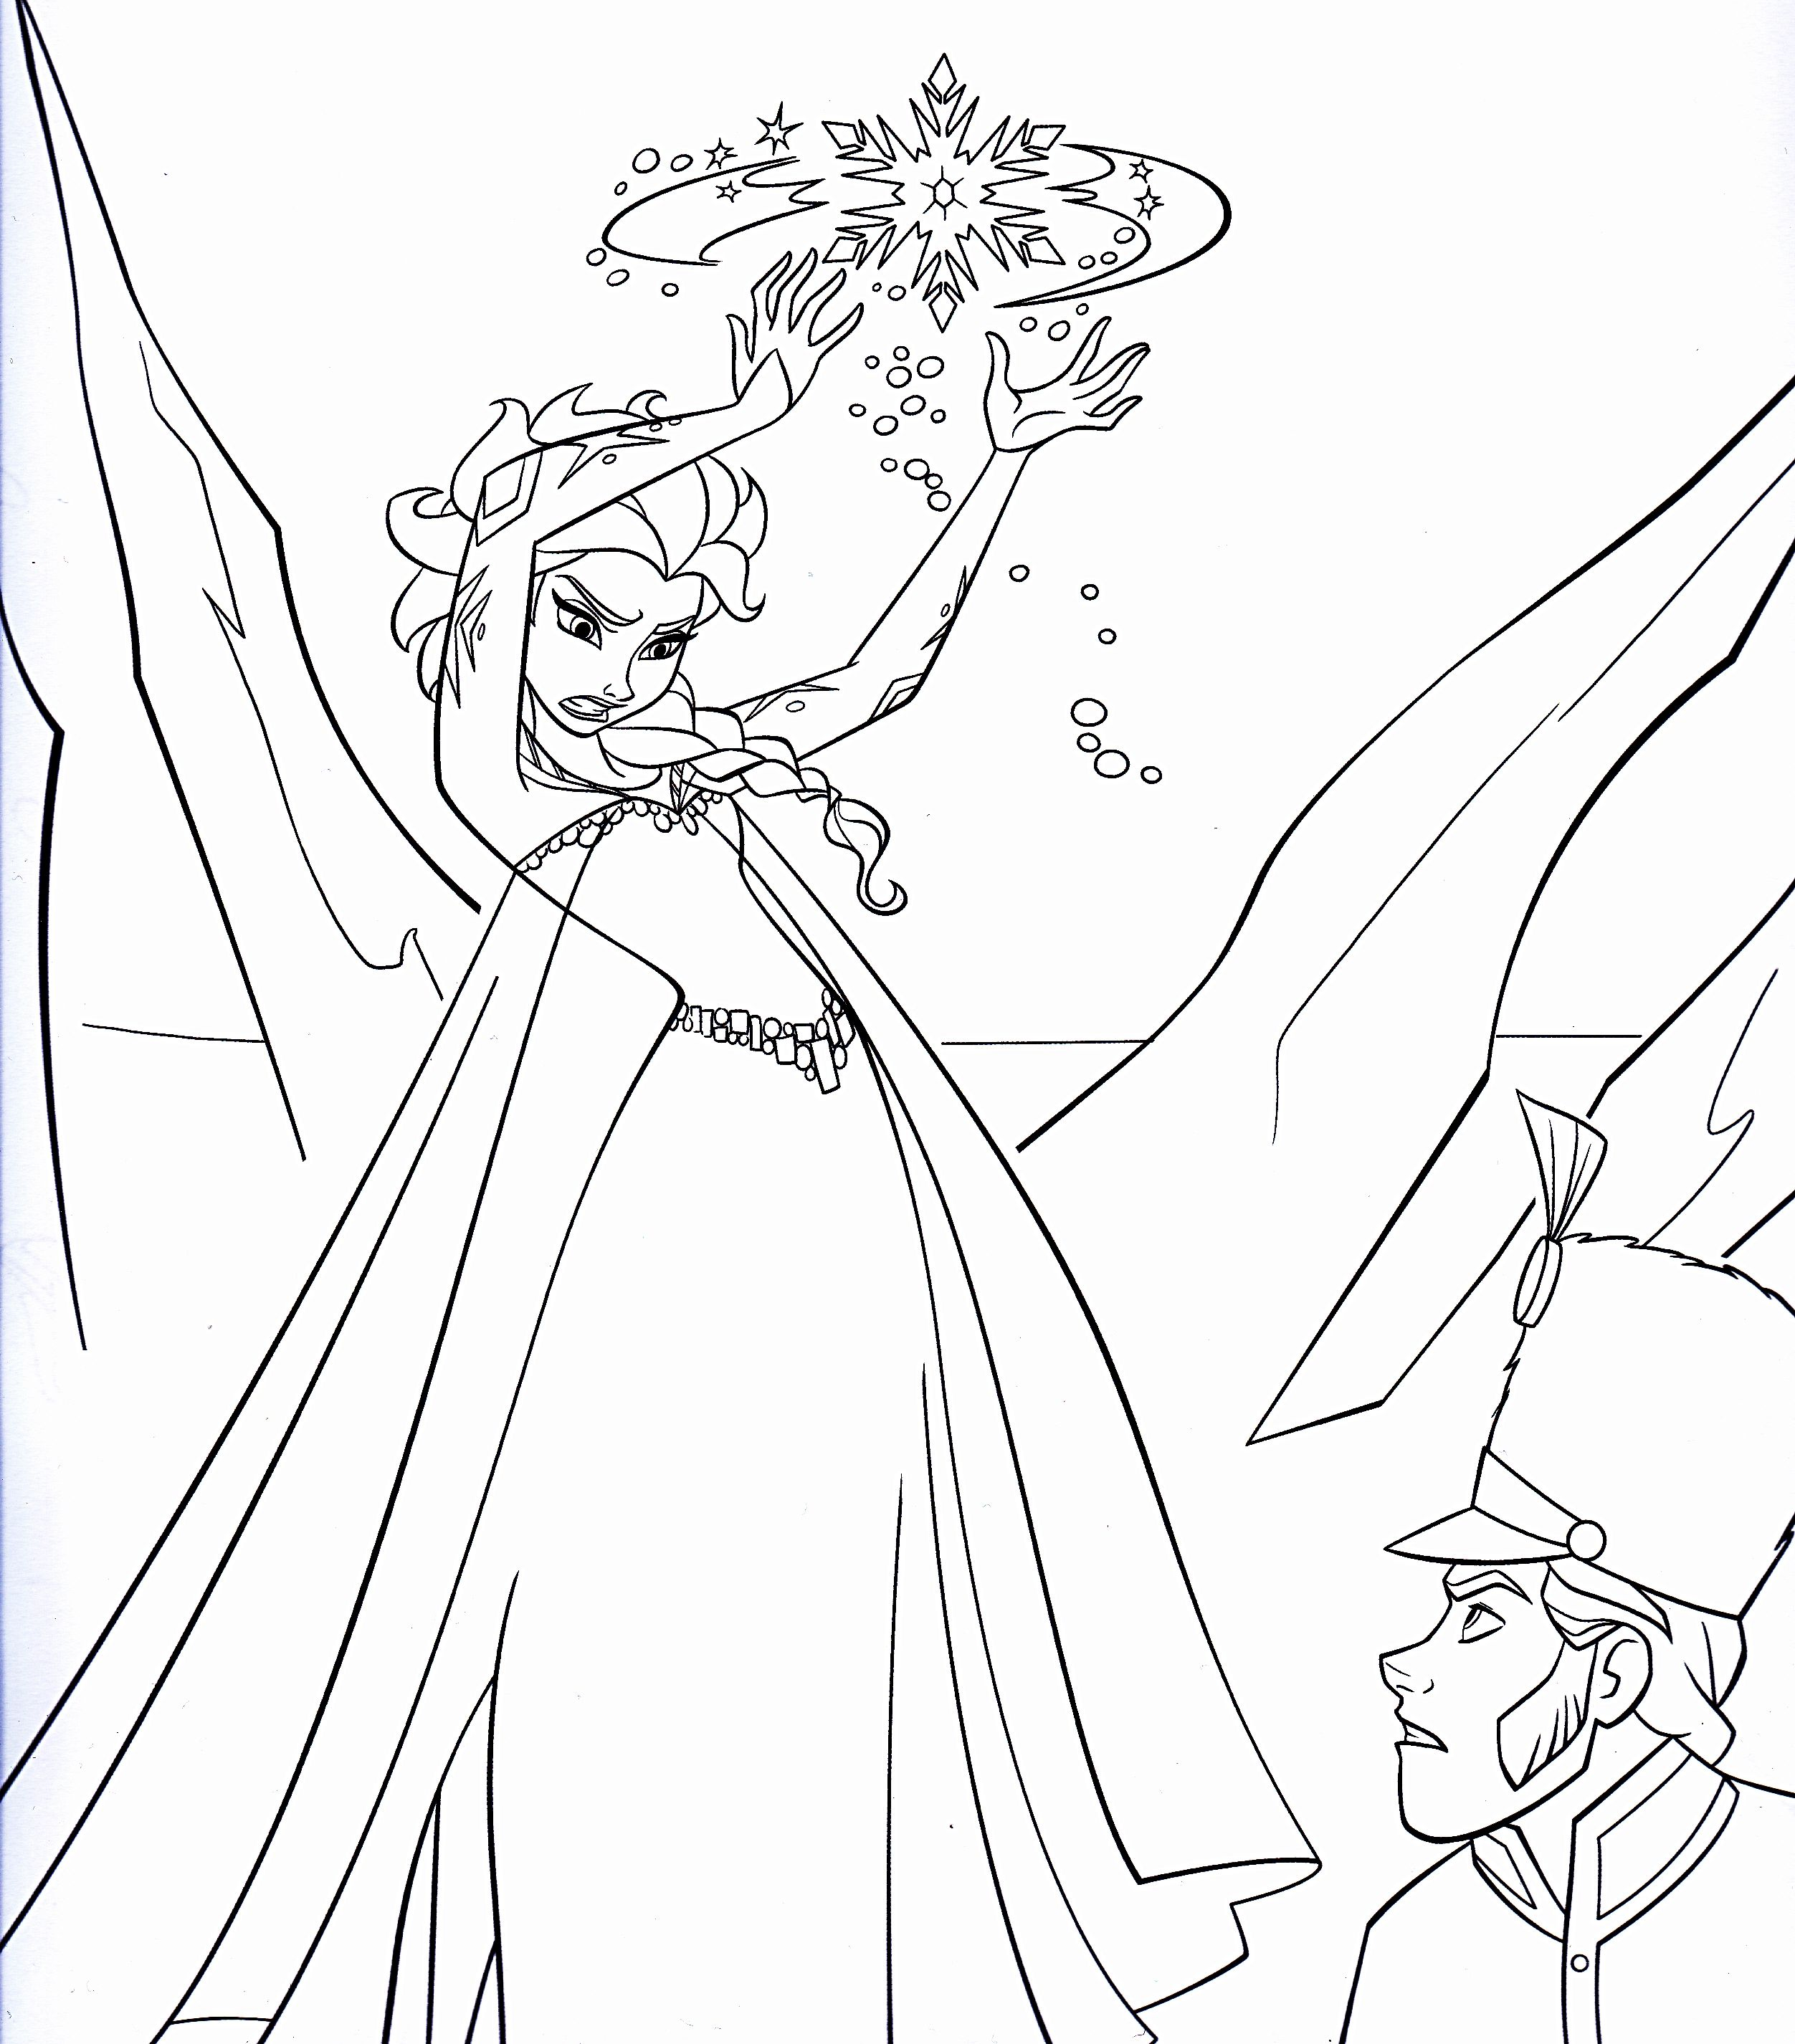 Frozen coloring pages kristoff - Disney Frozen Coloring Sheets Walt Disney Coloring Pages Queen Elsa Prince Hans